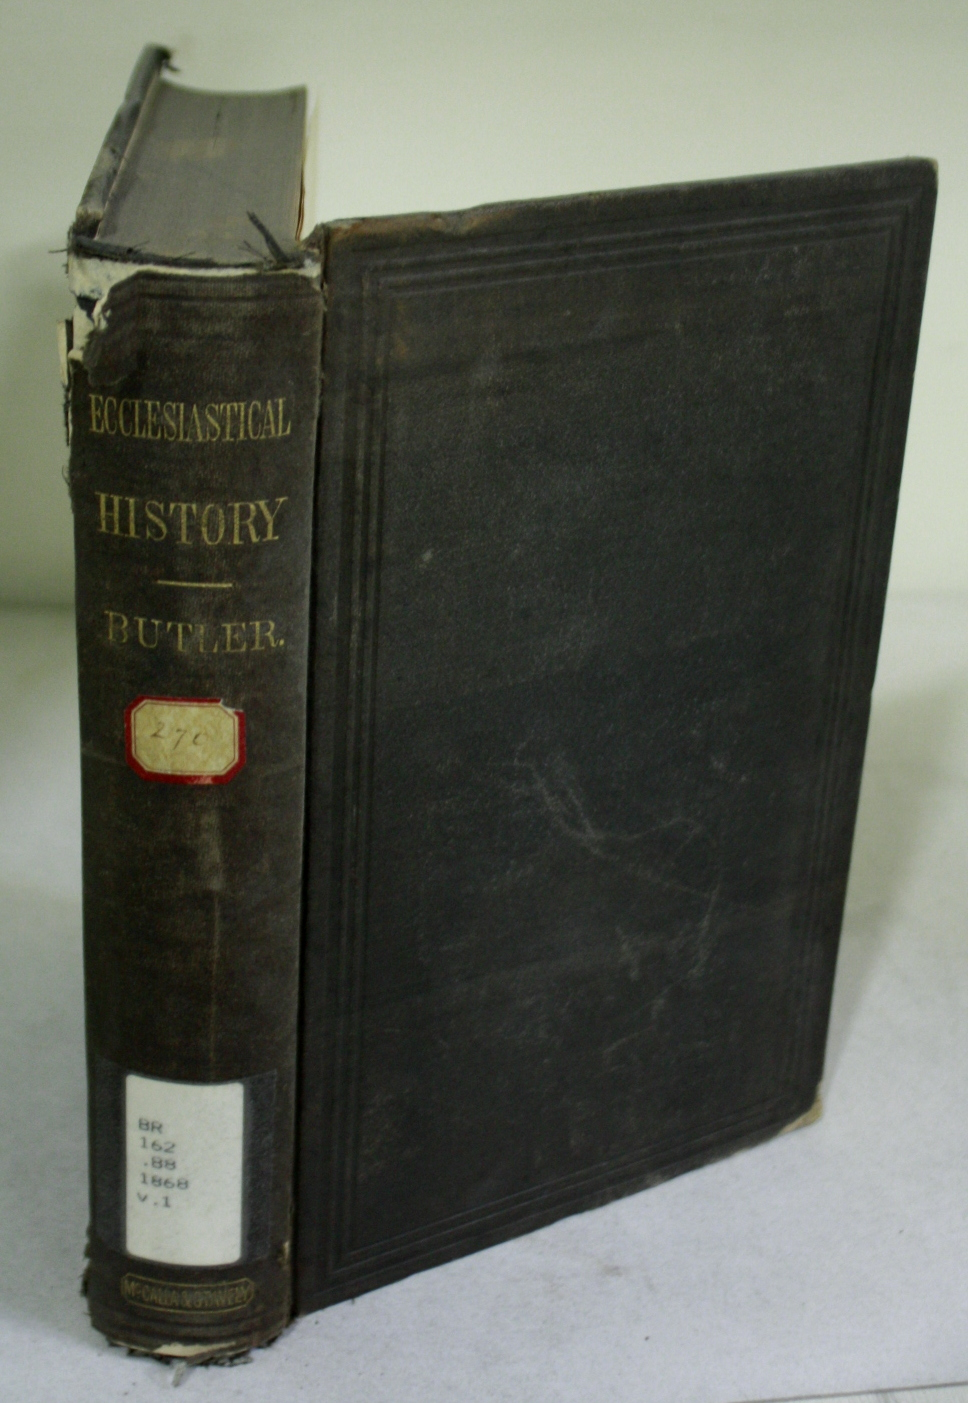 An Ecclesiastical History, From the First to the Thirteenth Century BWB15951430